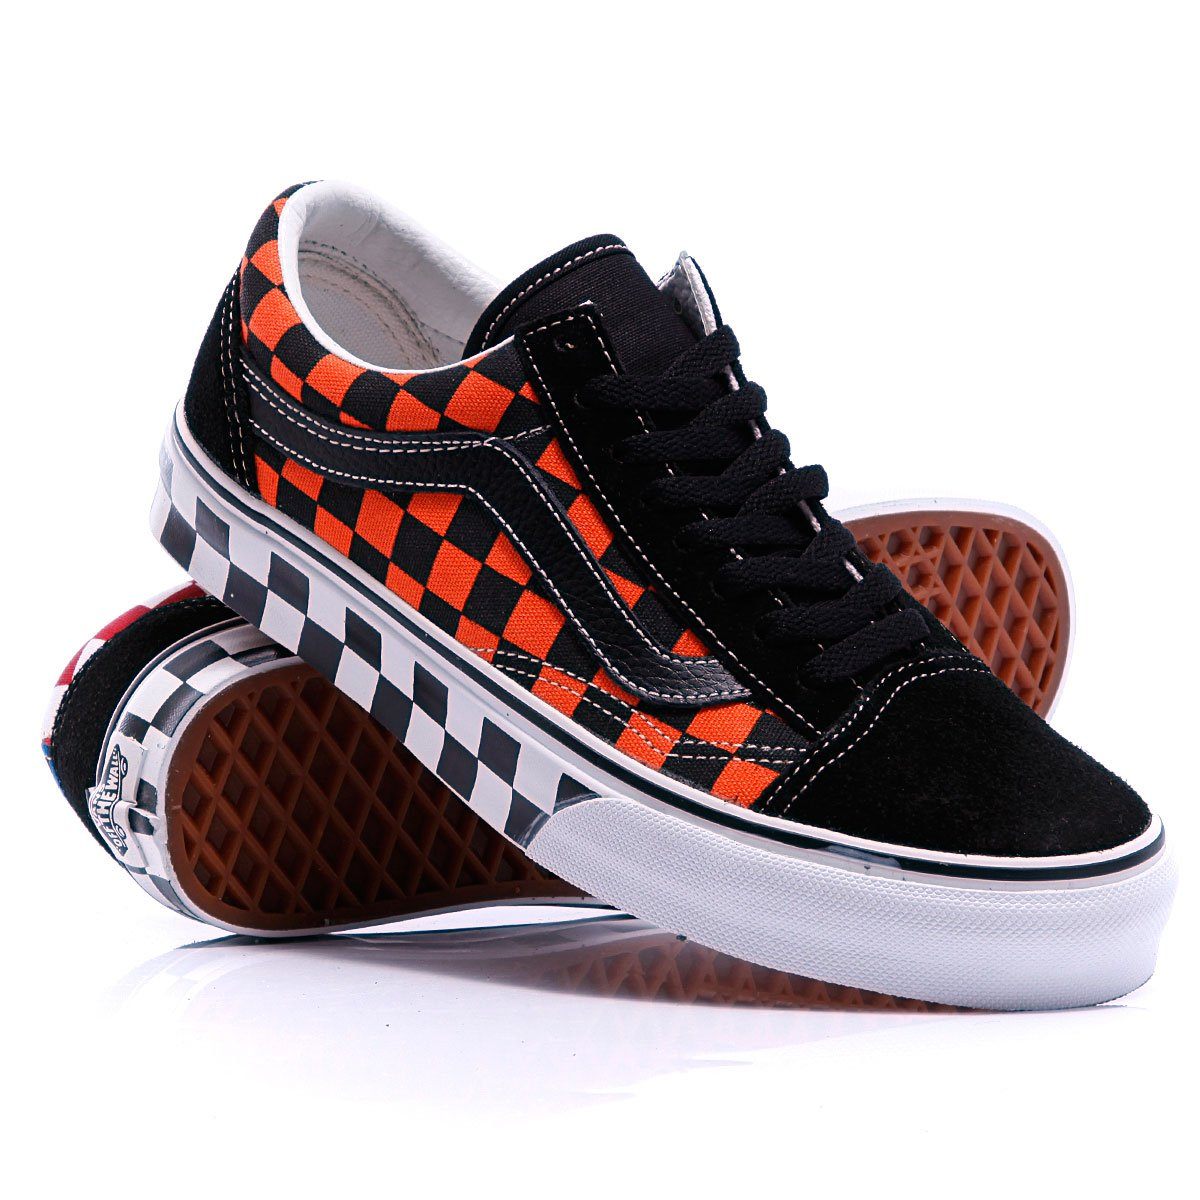 Купить кеды Vans Old Skool Chekerboard Black Blue Flame в интернет-магазине  Proskater.kz 6c9080d65cb